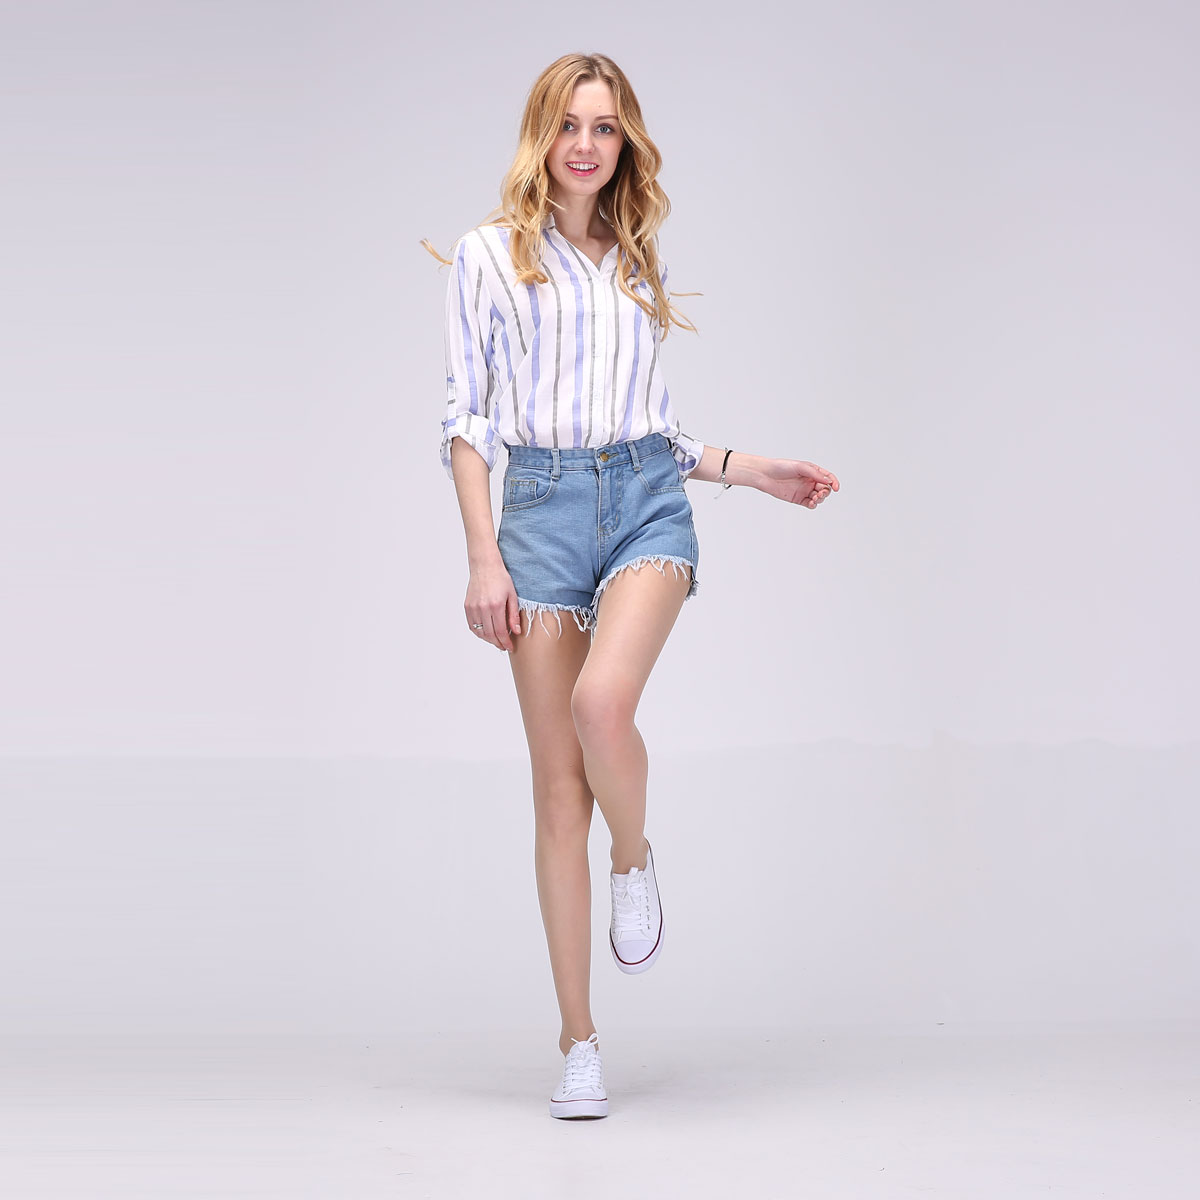 2017 Hot New Women Full Sleeve Blouses Striped Shirts Women Summer Tops Flare Sleeve Blouse Chemise Femme P Size 13